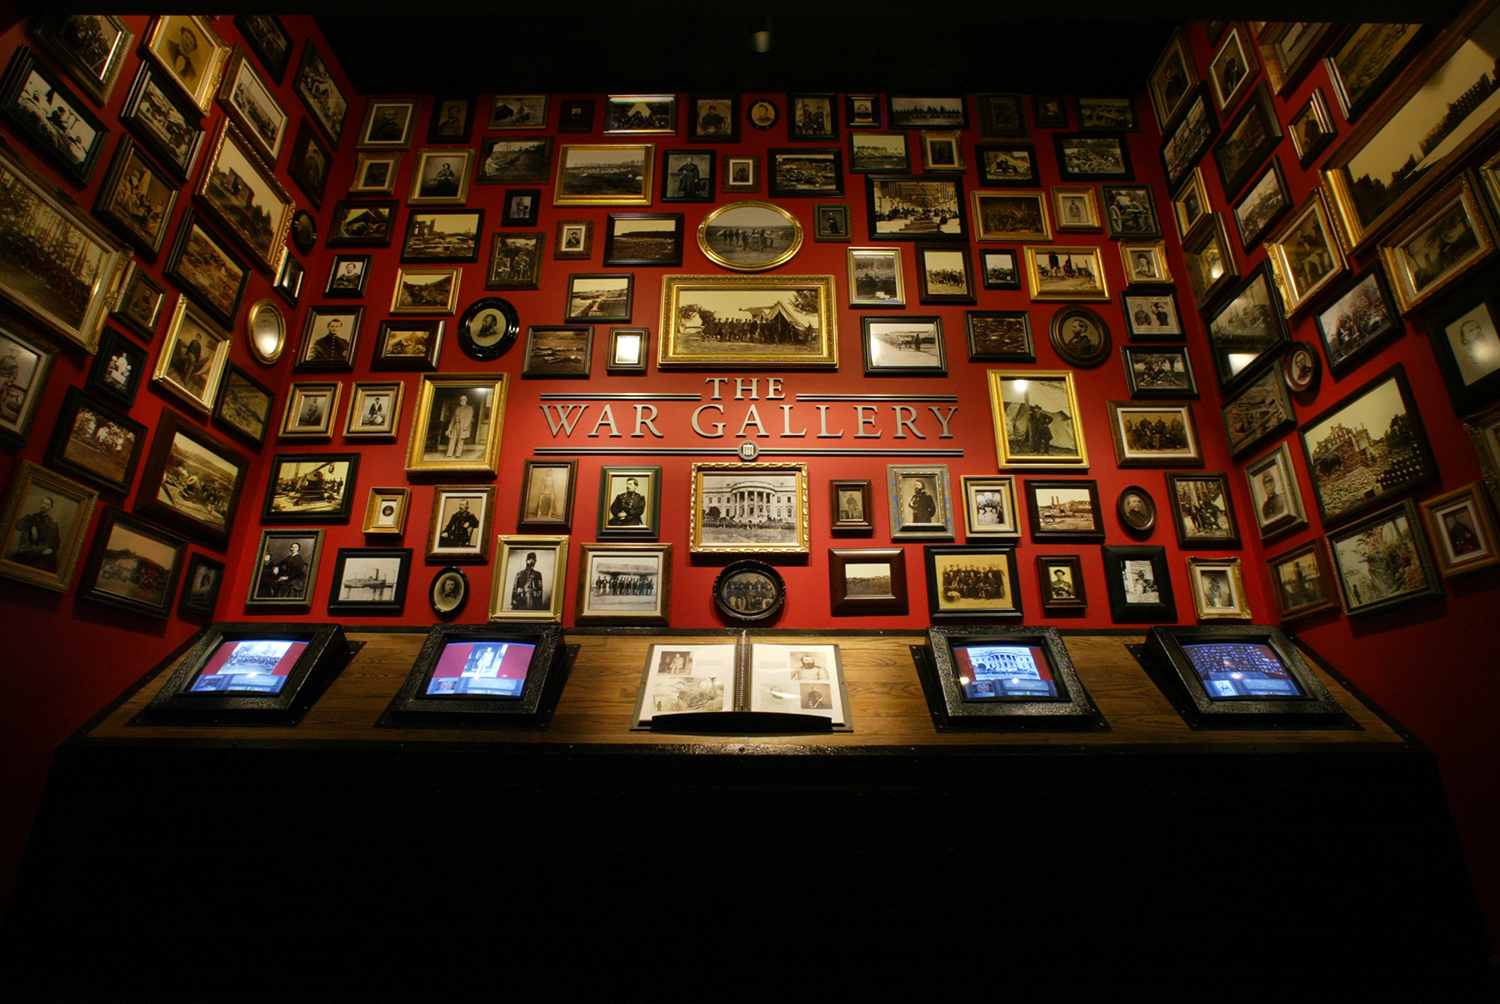 The War Gallery Scrapbook presents an interactive experience presenting images of the Civil War. Ted Schurter/The State Journal-Register